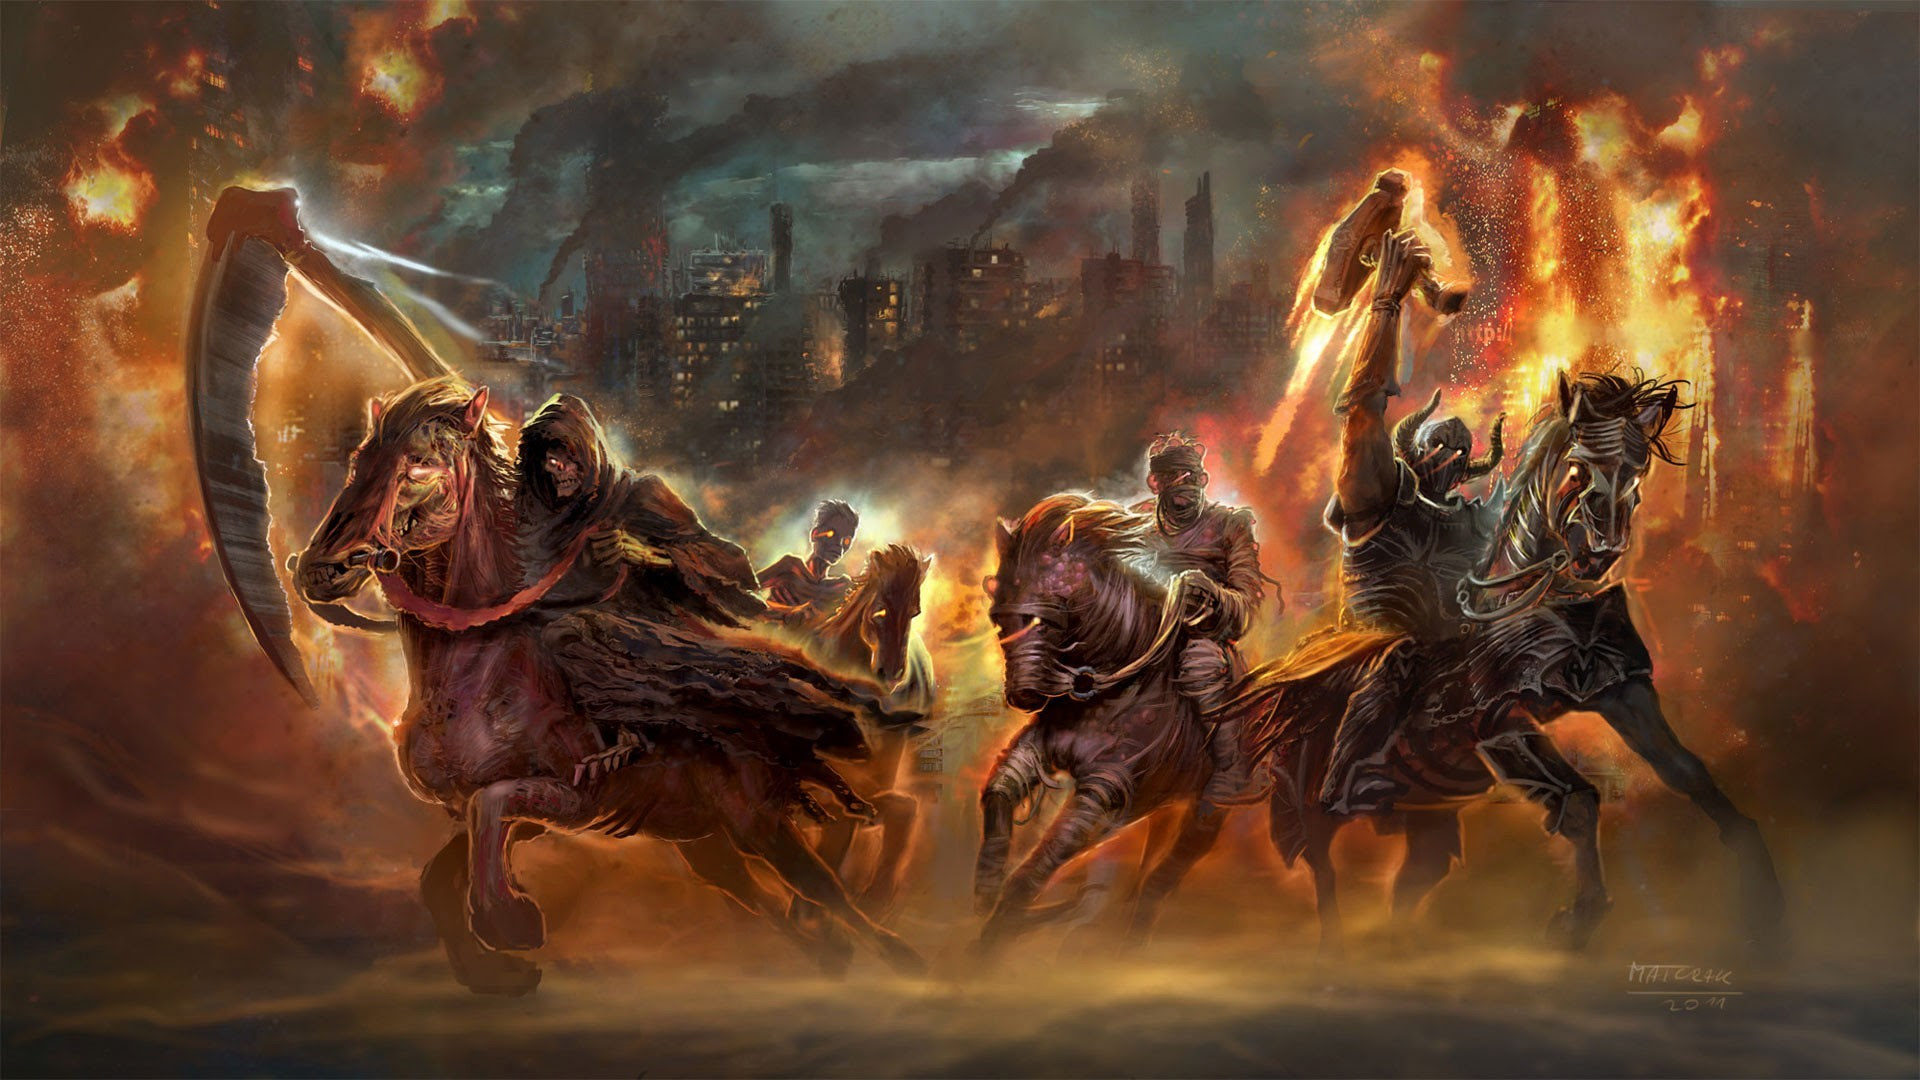 Four Horsemen Of The Apocalypse Wallpaper 74 Images